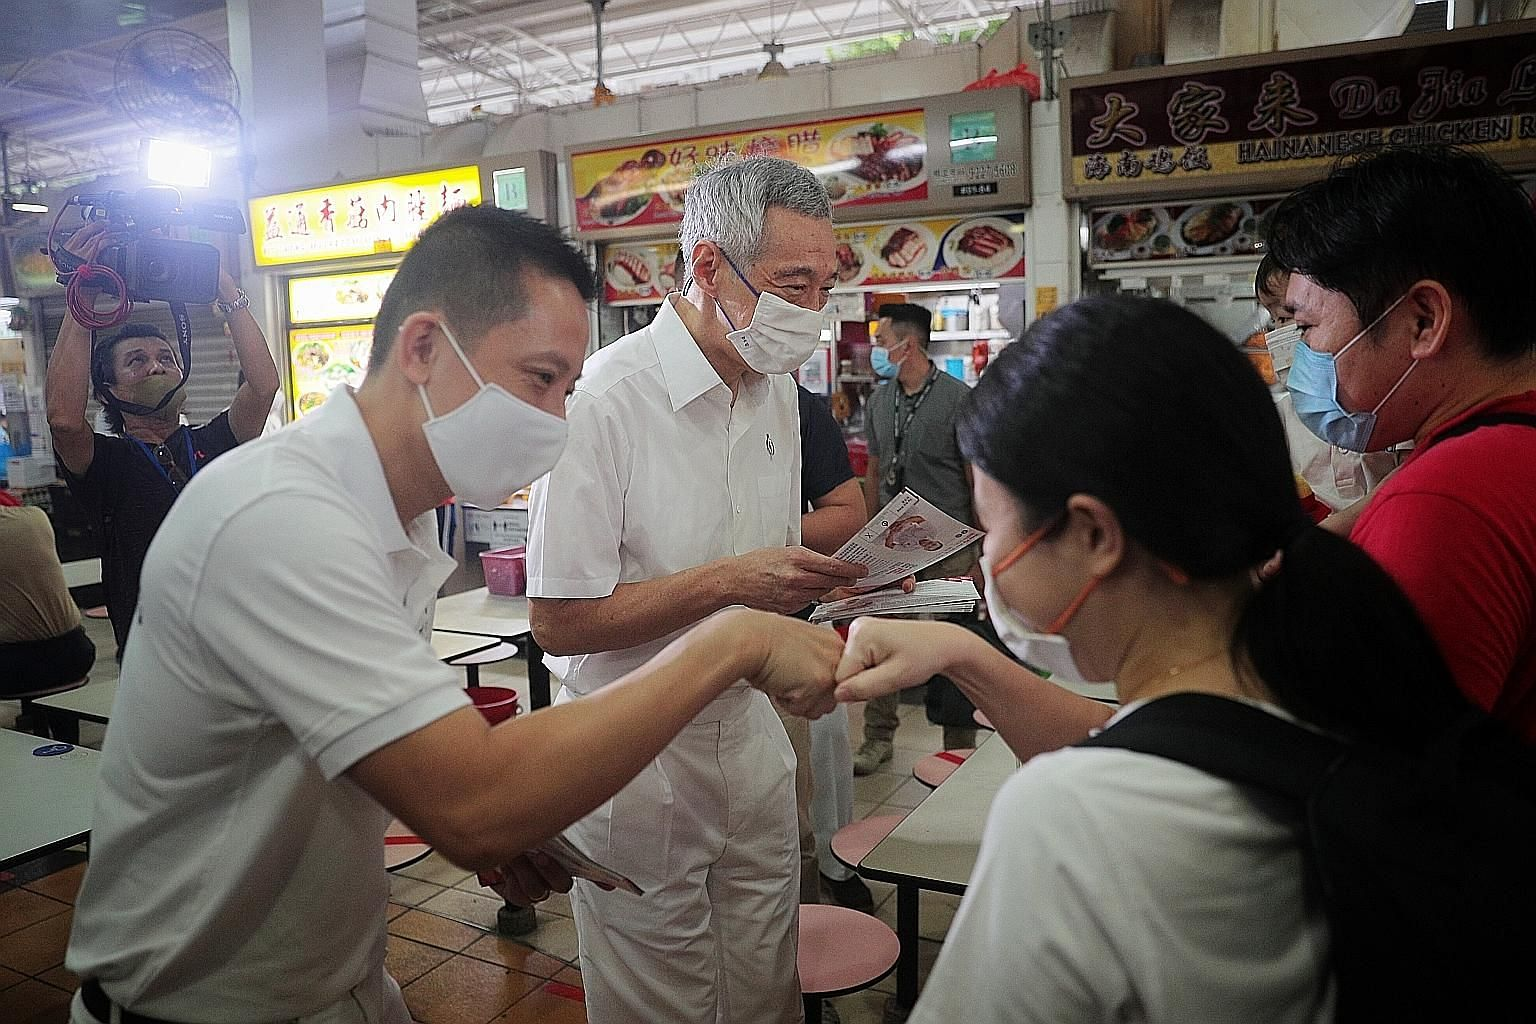 PAP candidates for Bishan-Toa Payoh GRC (from right) Ng Eng Hen, who is Defence Minister, Saktiandi Supaat and Chong Kee Hiong on a walkabout in Toa Payoh Central on Thursday. ST PHOTO: SHINTARO TAY The PAP's candidate for Bukit Batok SMC Murali Pill